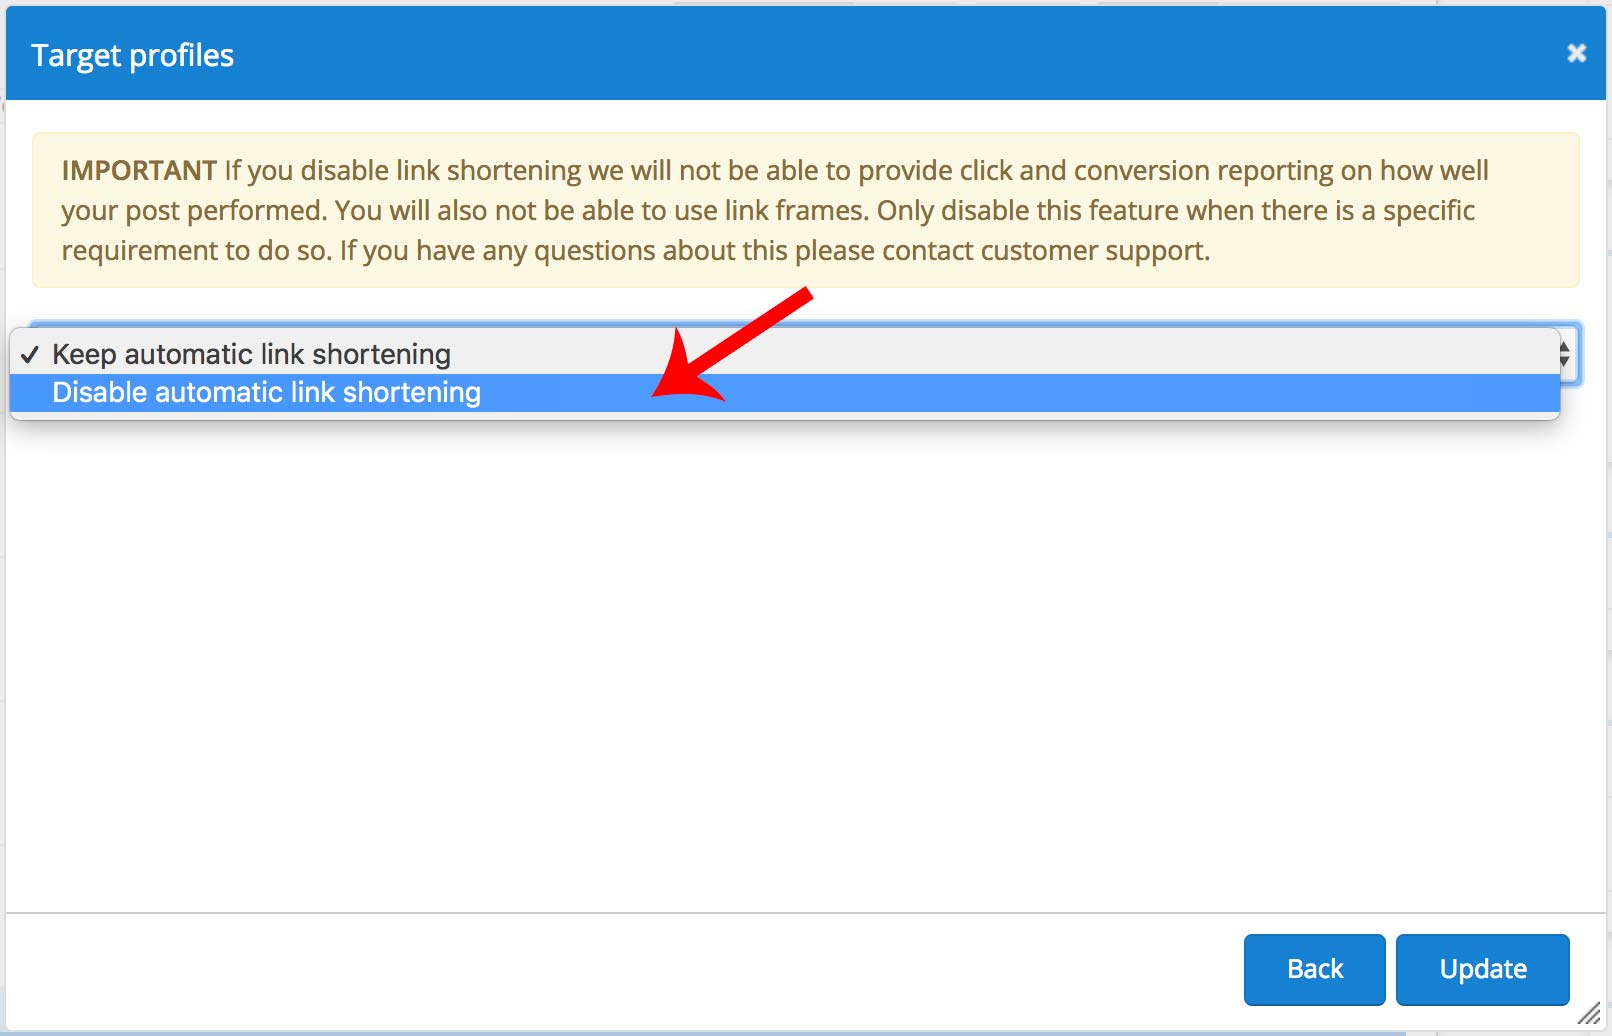 Target profiles - disable link shortening